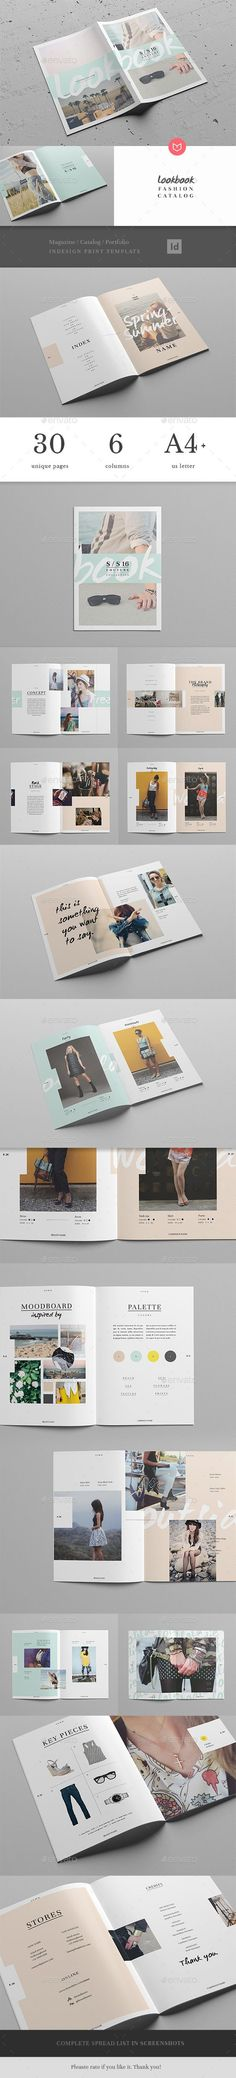 Lookbook / Fashion Magazine + Catalogue Template #design Download: http://graphicriver.net/item/lookbook-fashion-magazine-catalogue/12444832?ref=ksioks: